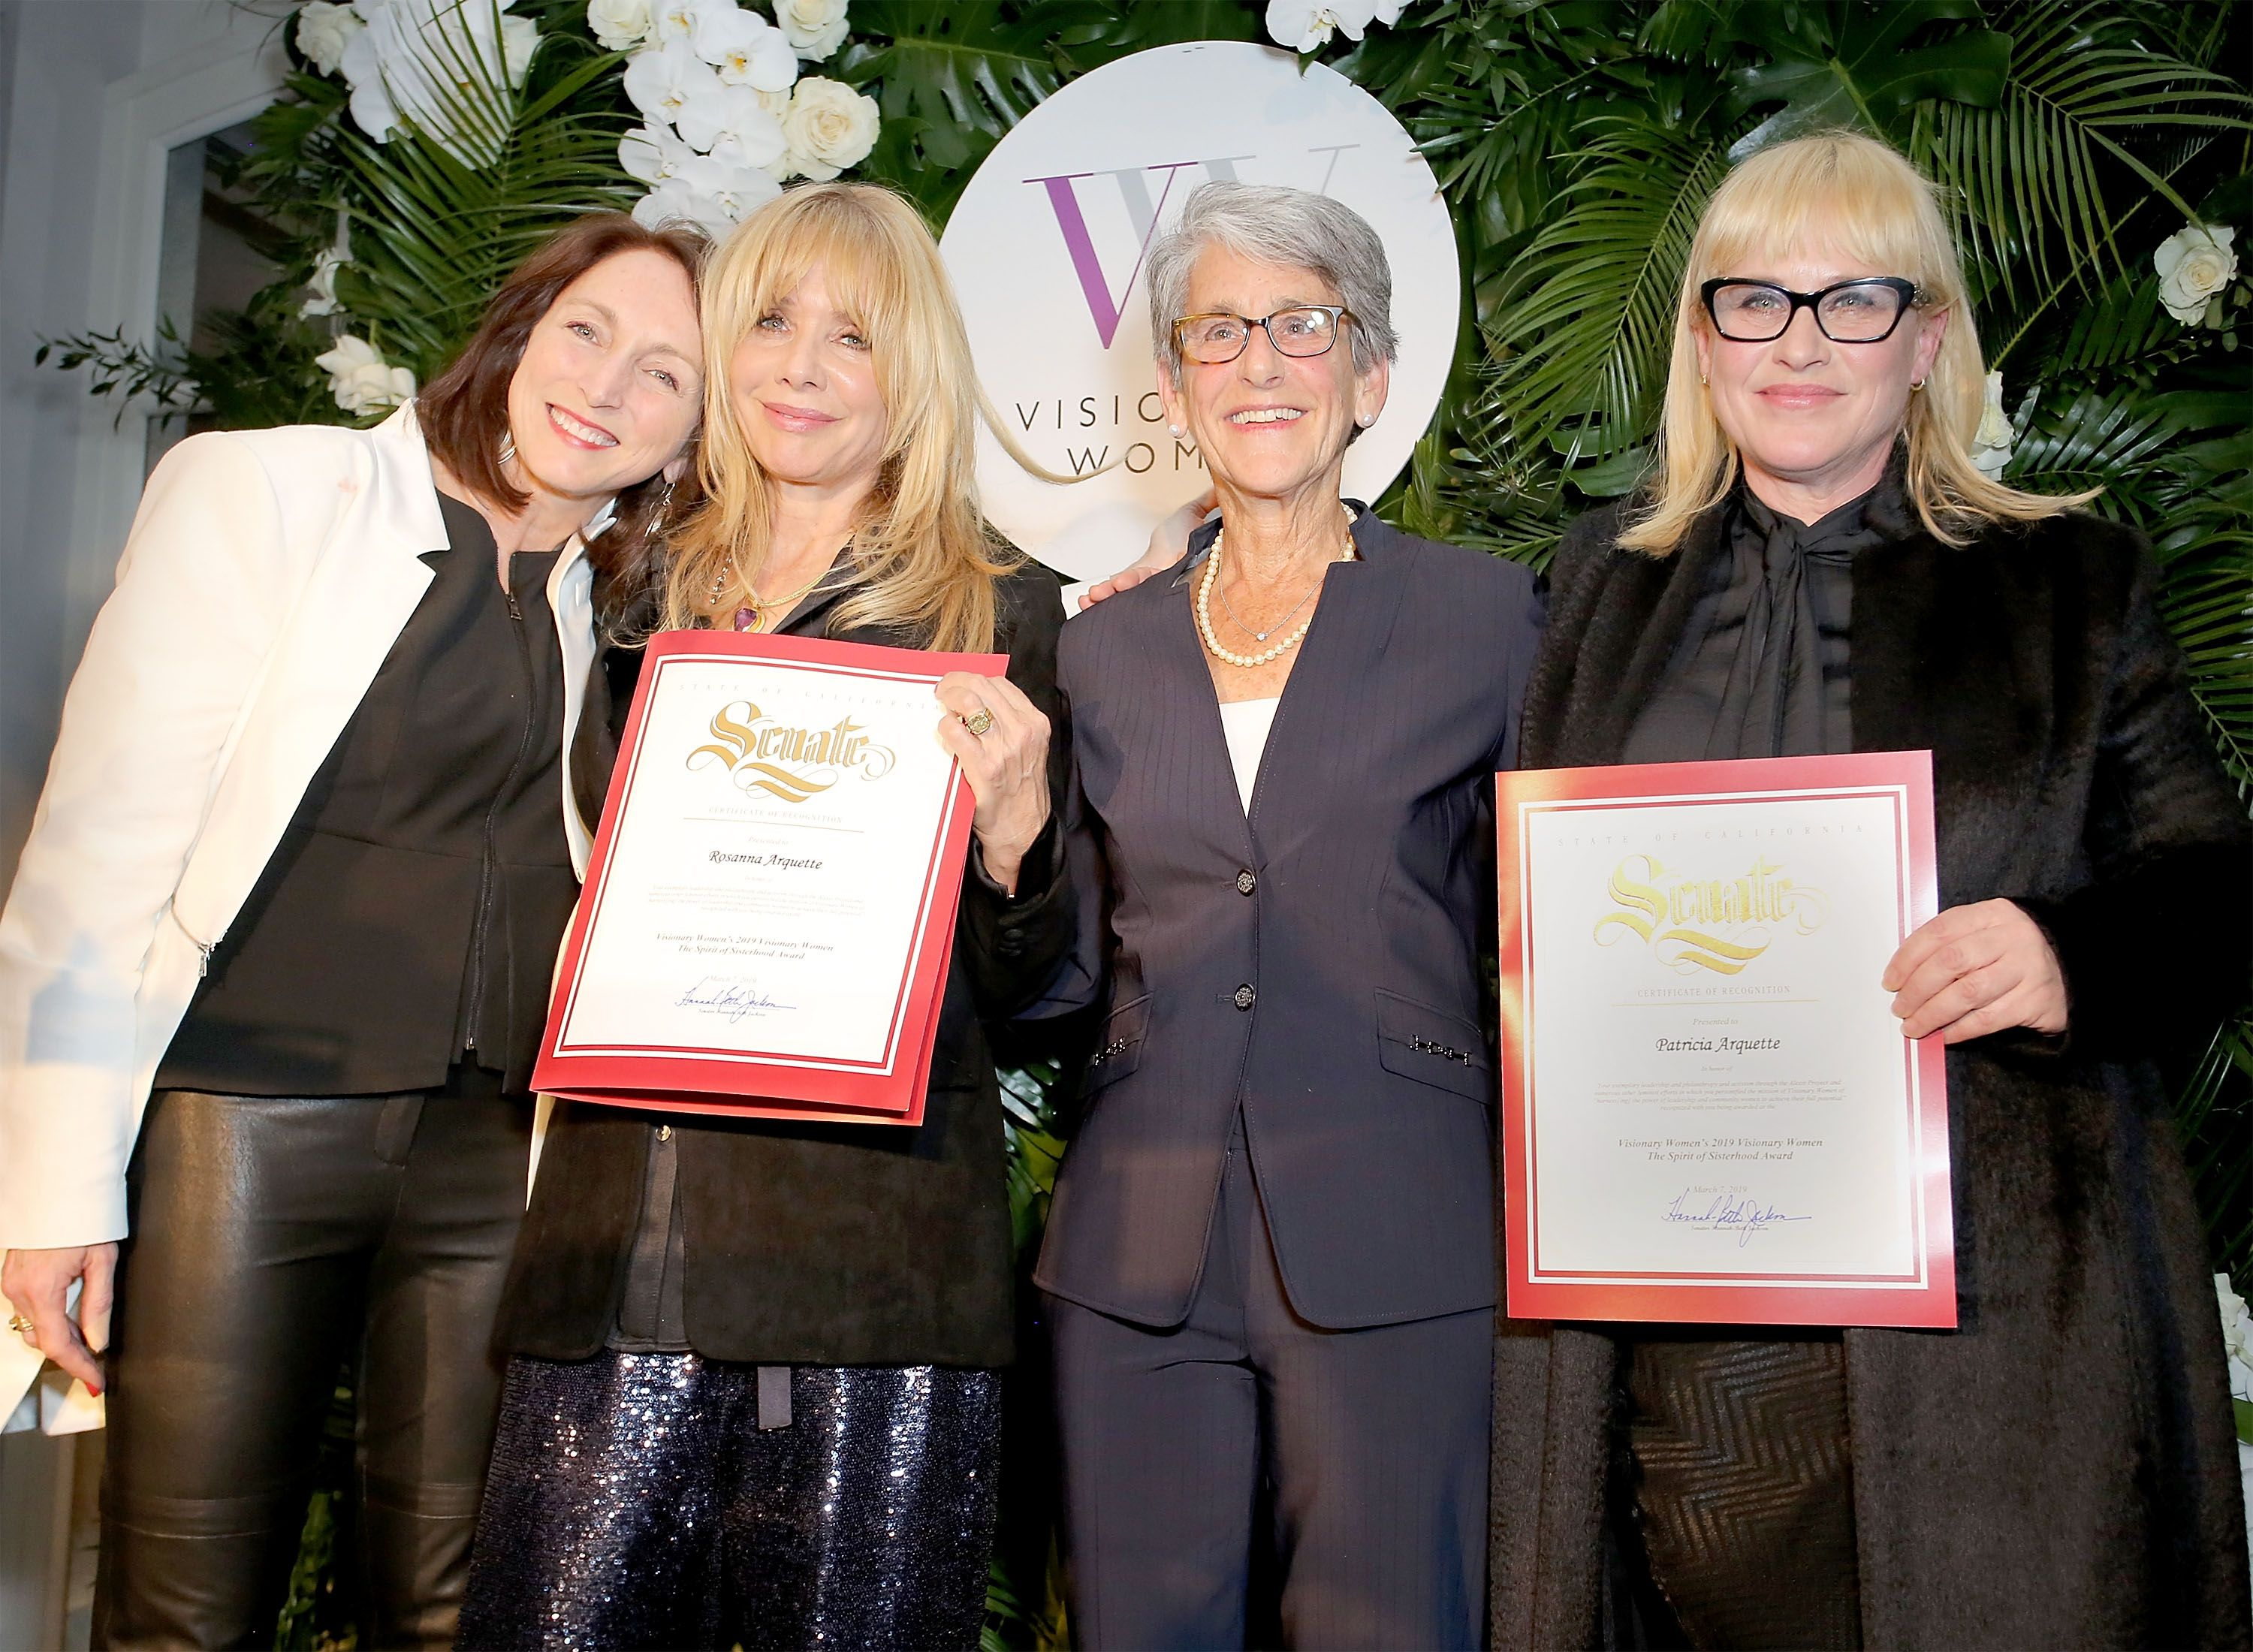 Inside the Visionary Woman Awards